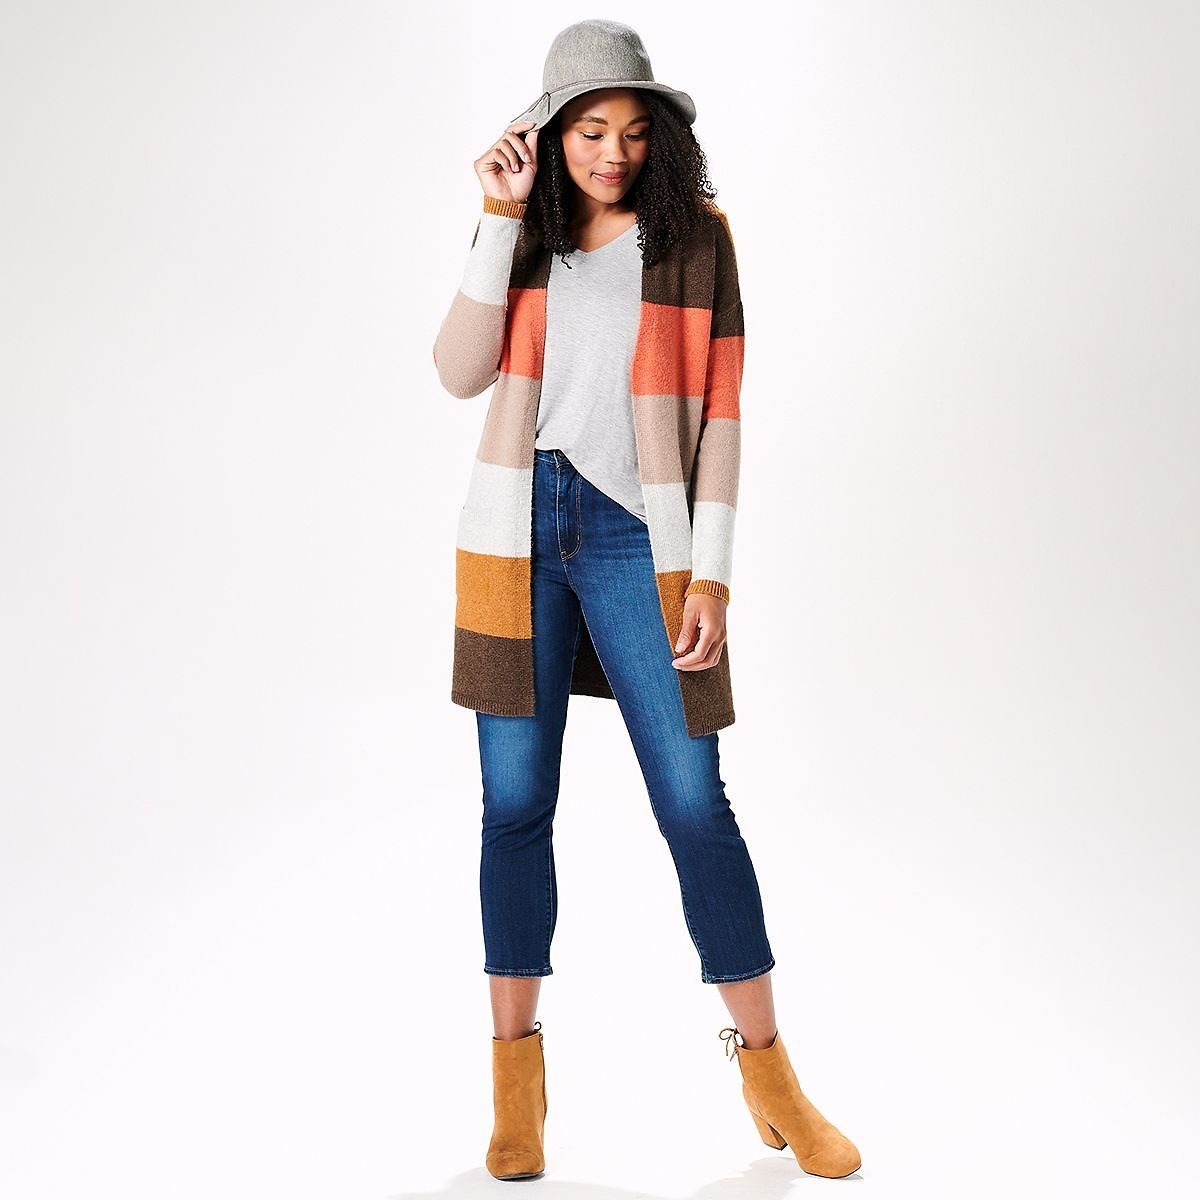 Women's Fall Colors Outfit Cardigan